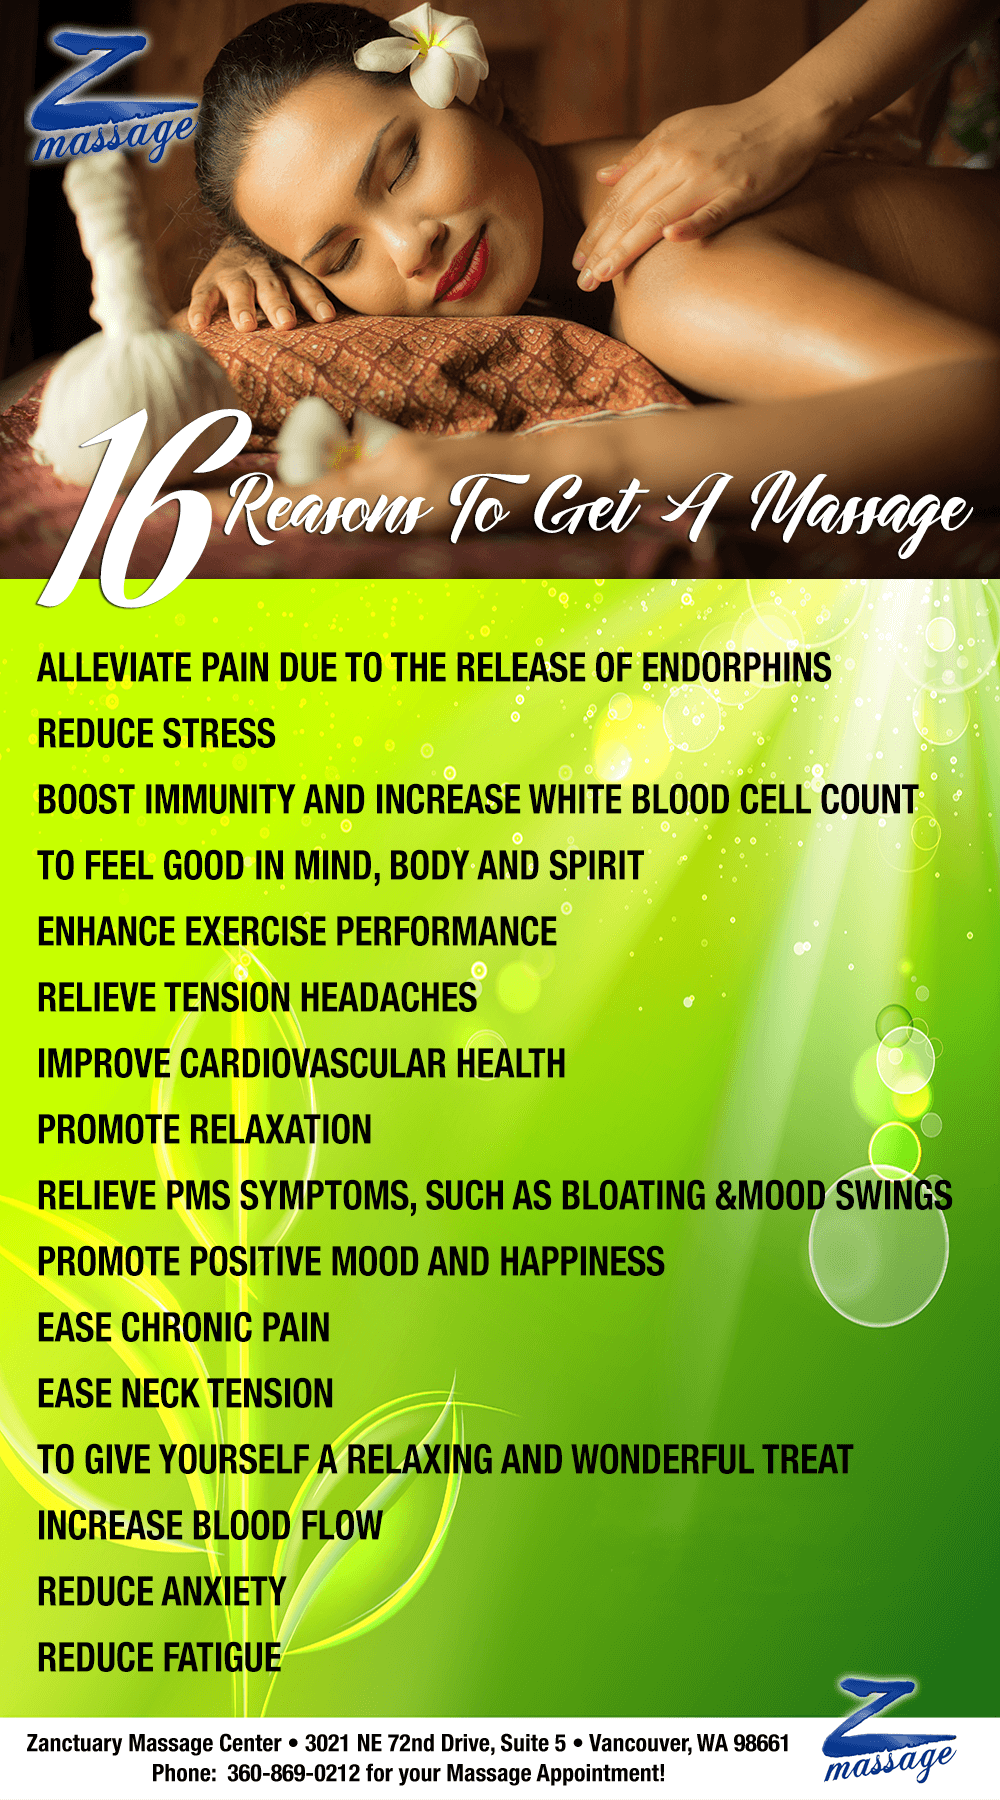 16-reasons-for-massage-infographic-Zanctuary-massage-center